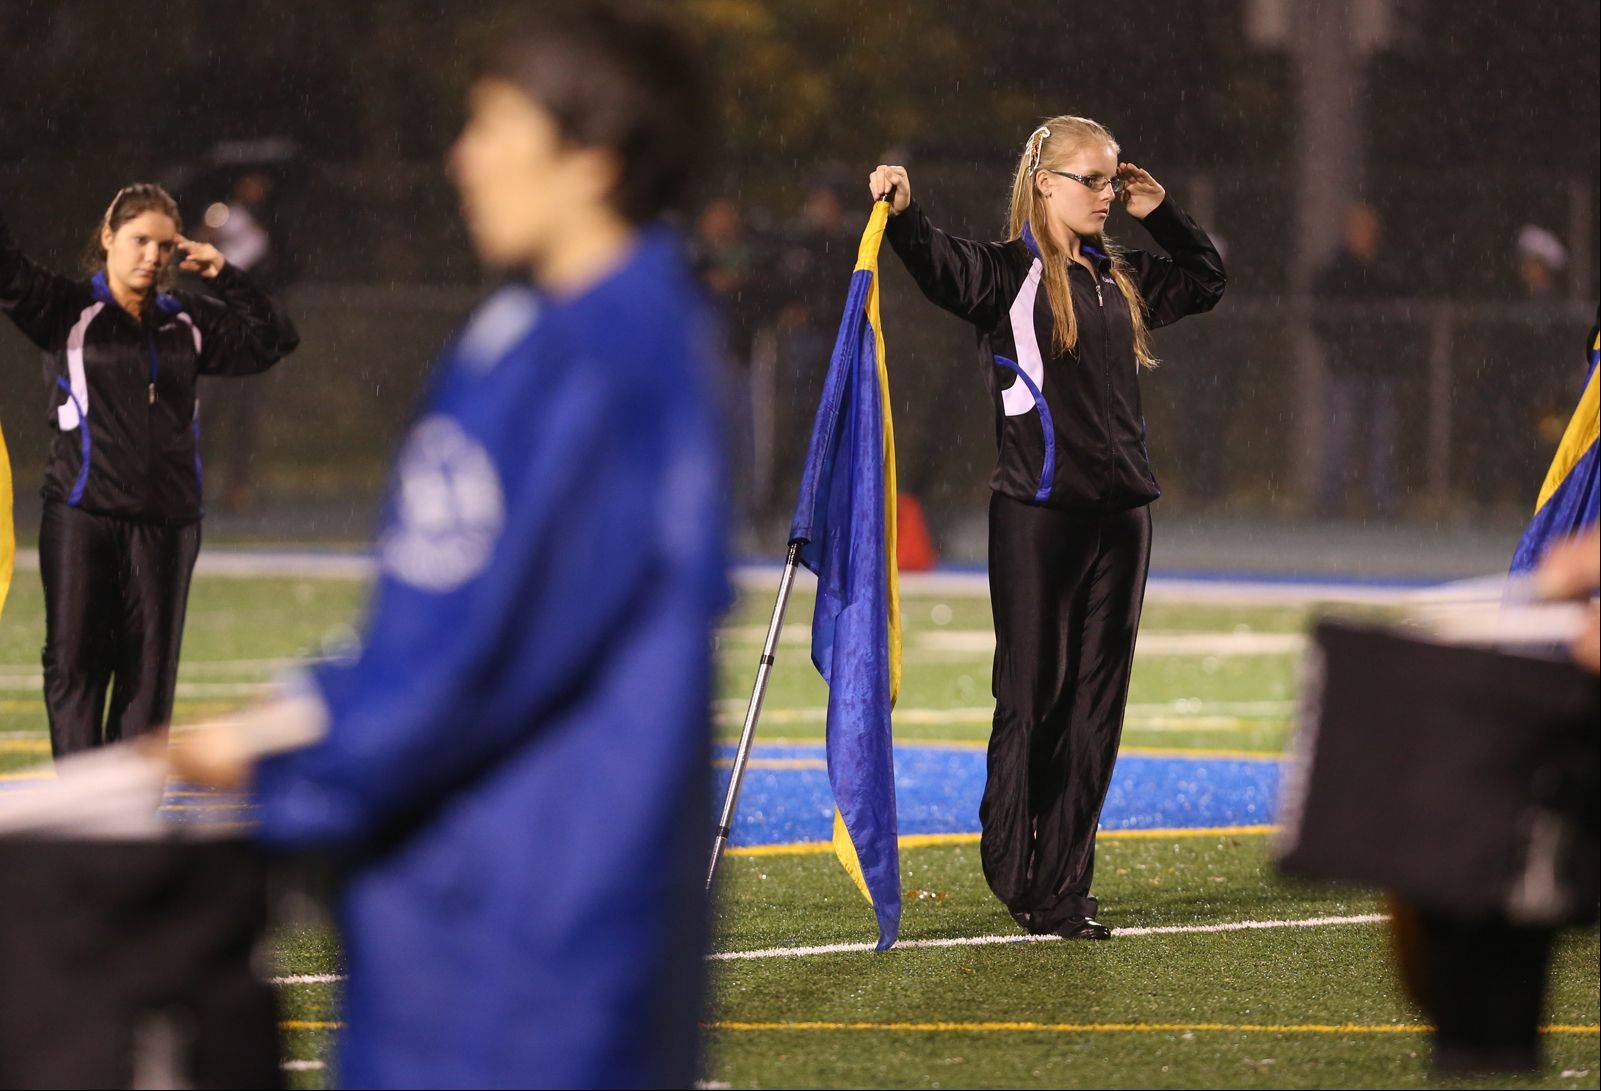 Playoffs -Round One- Photos from the Glenbrook North at Wheaton North football game on Friday, Nov. 1.